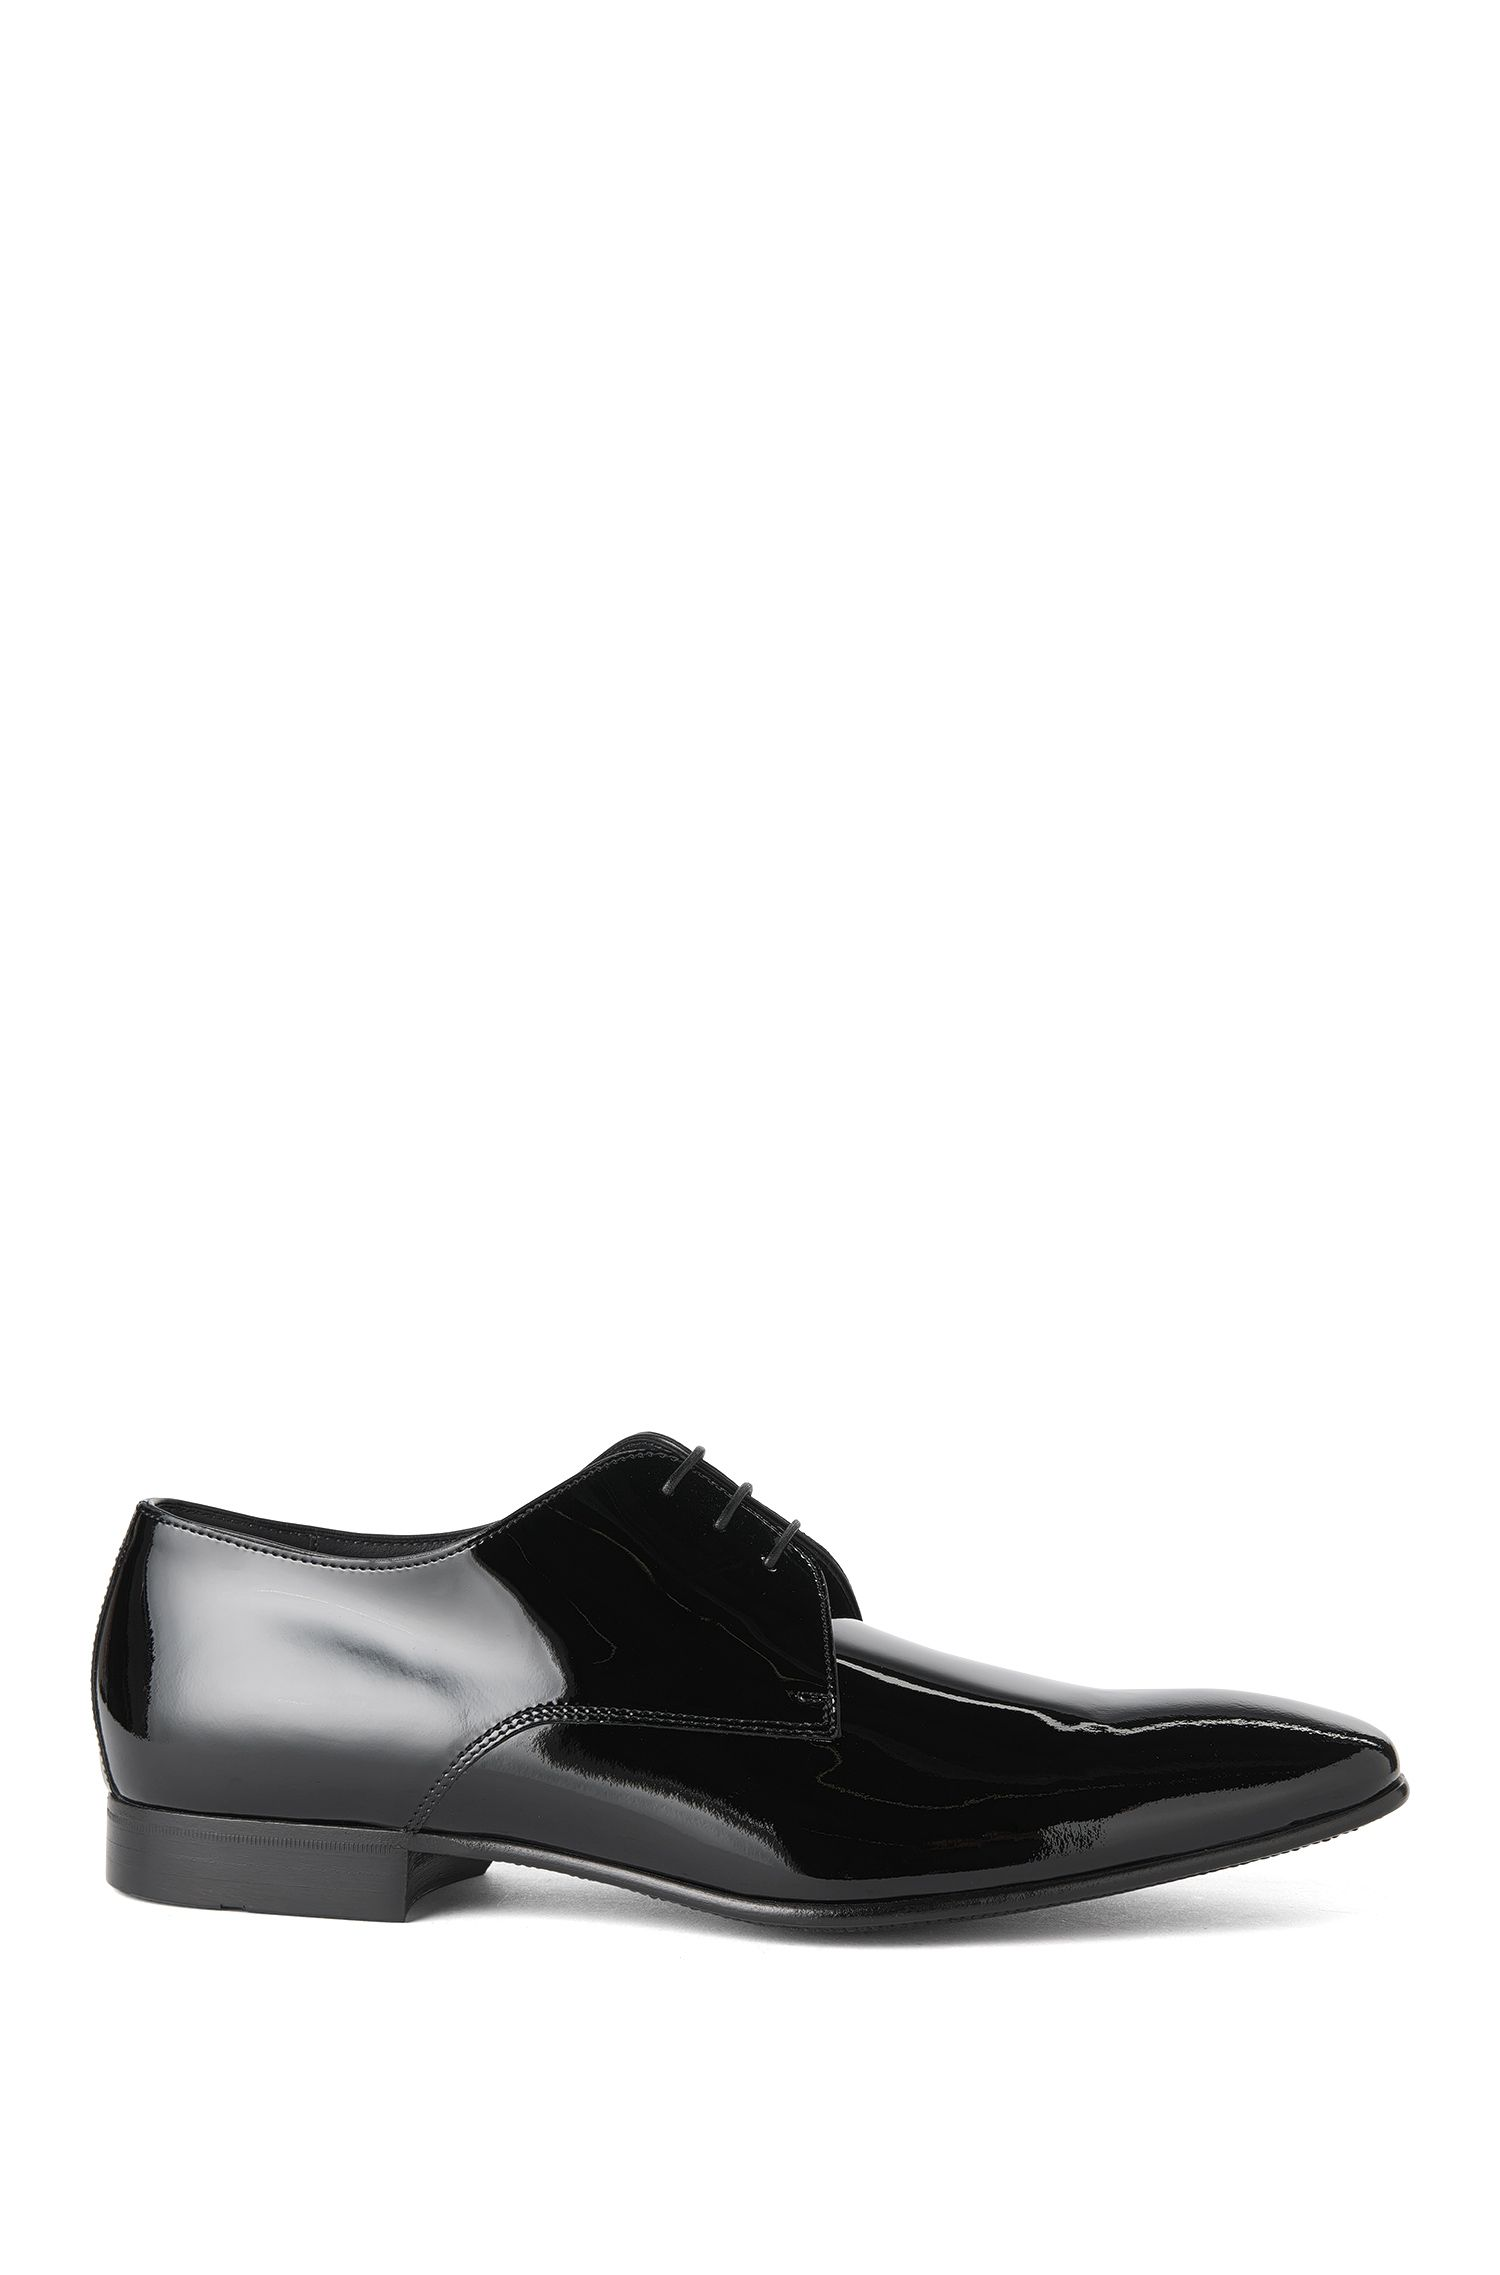 Italian-made lace-up shoe in patent leather